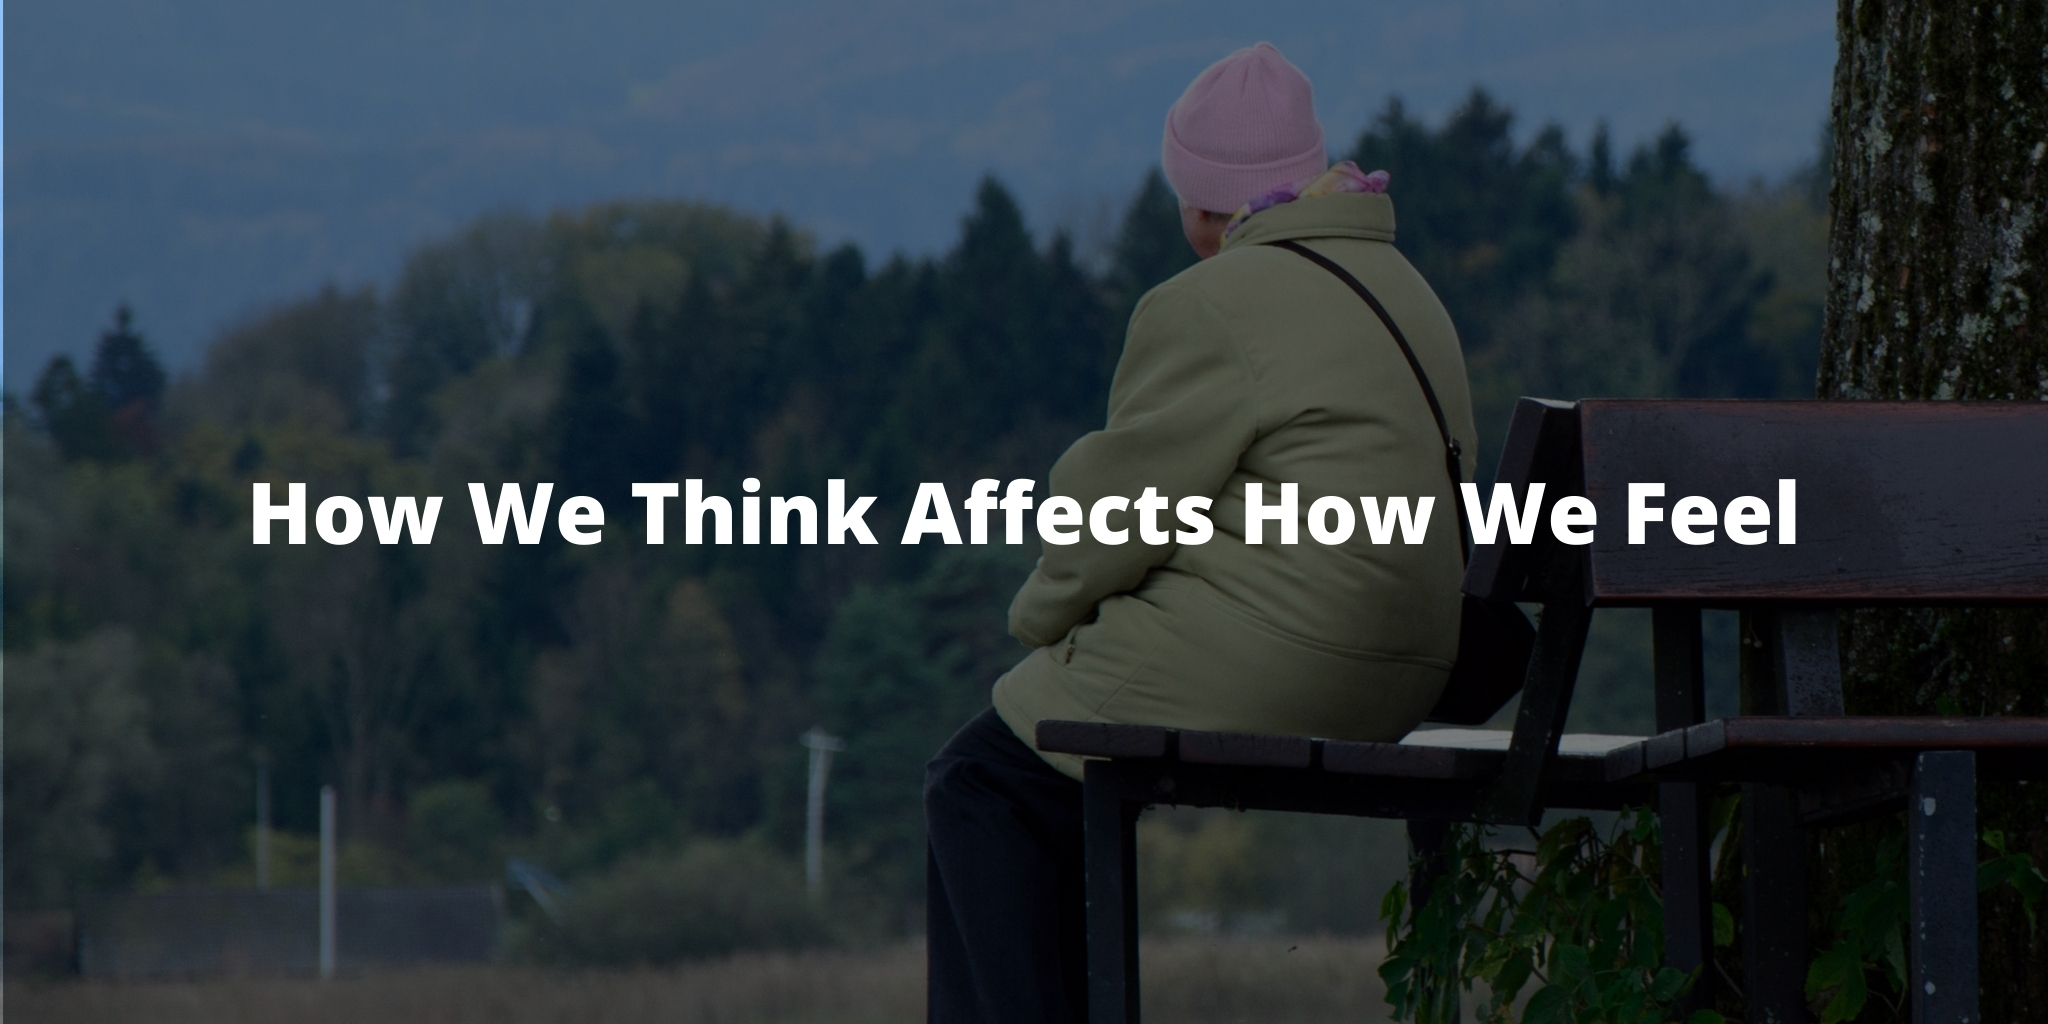 How We Think Affects How We Feel